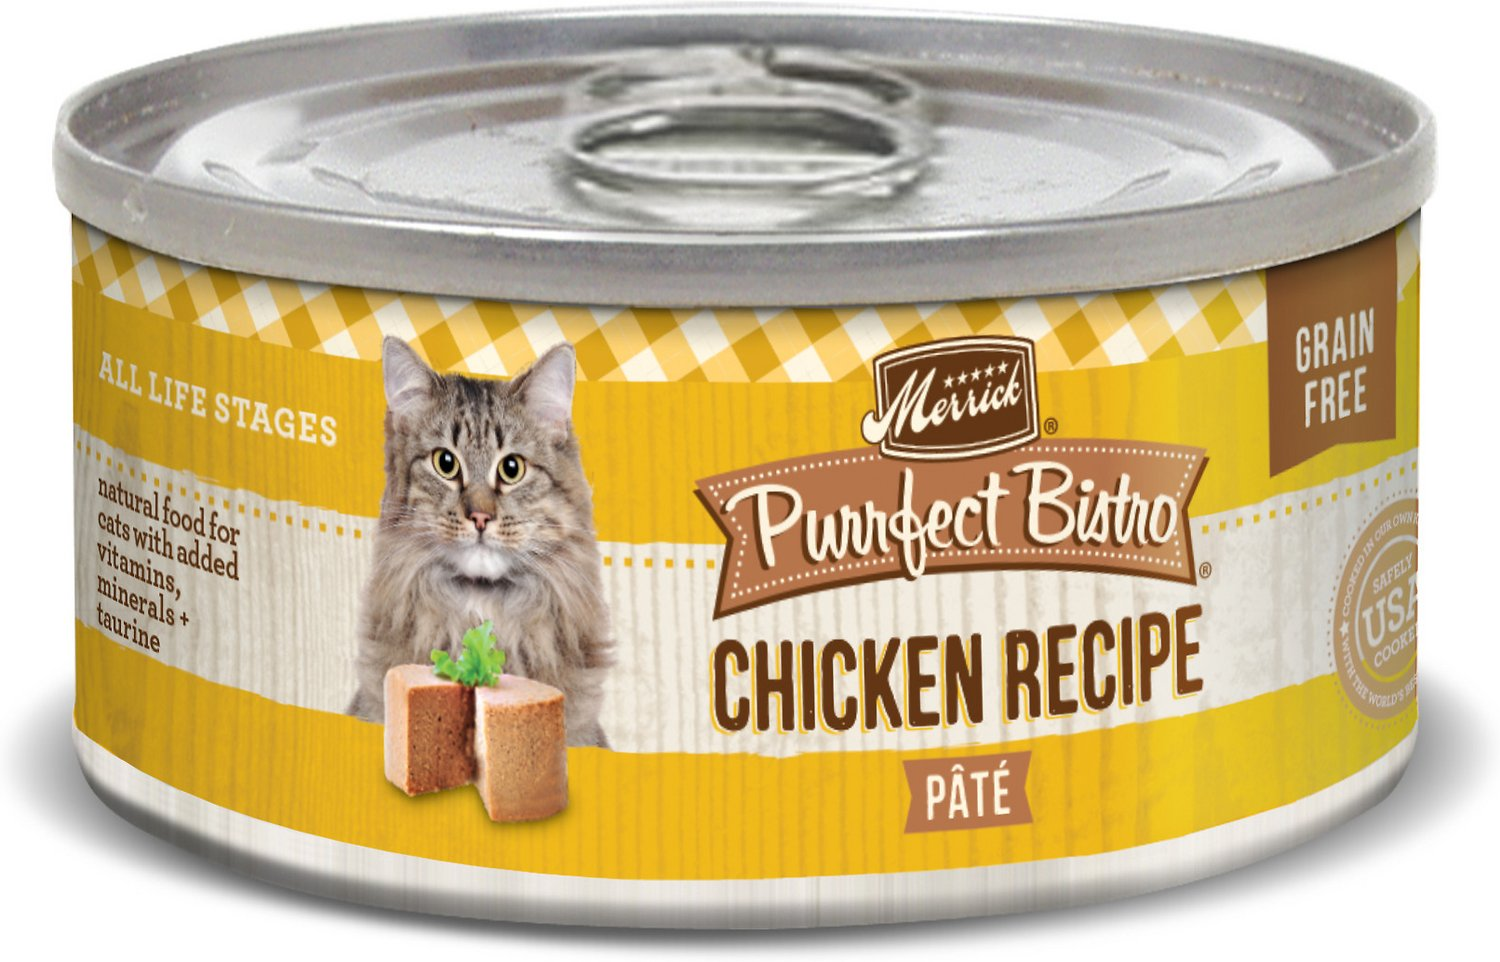 Quality Of Merrick Canned Cat Food